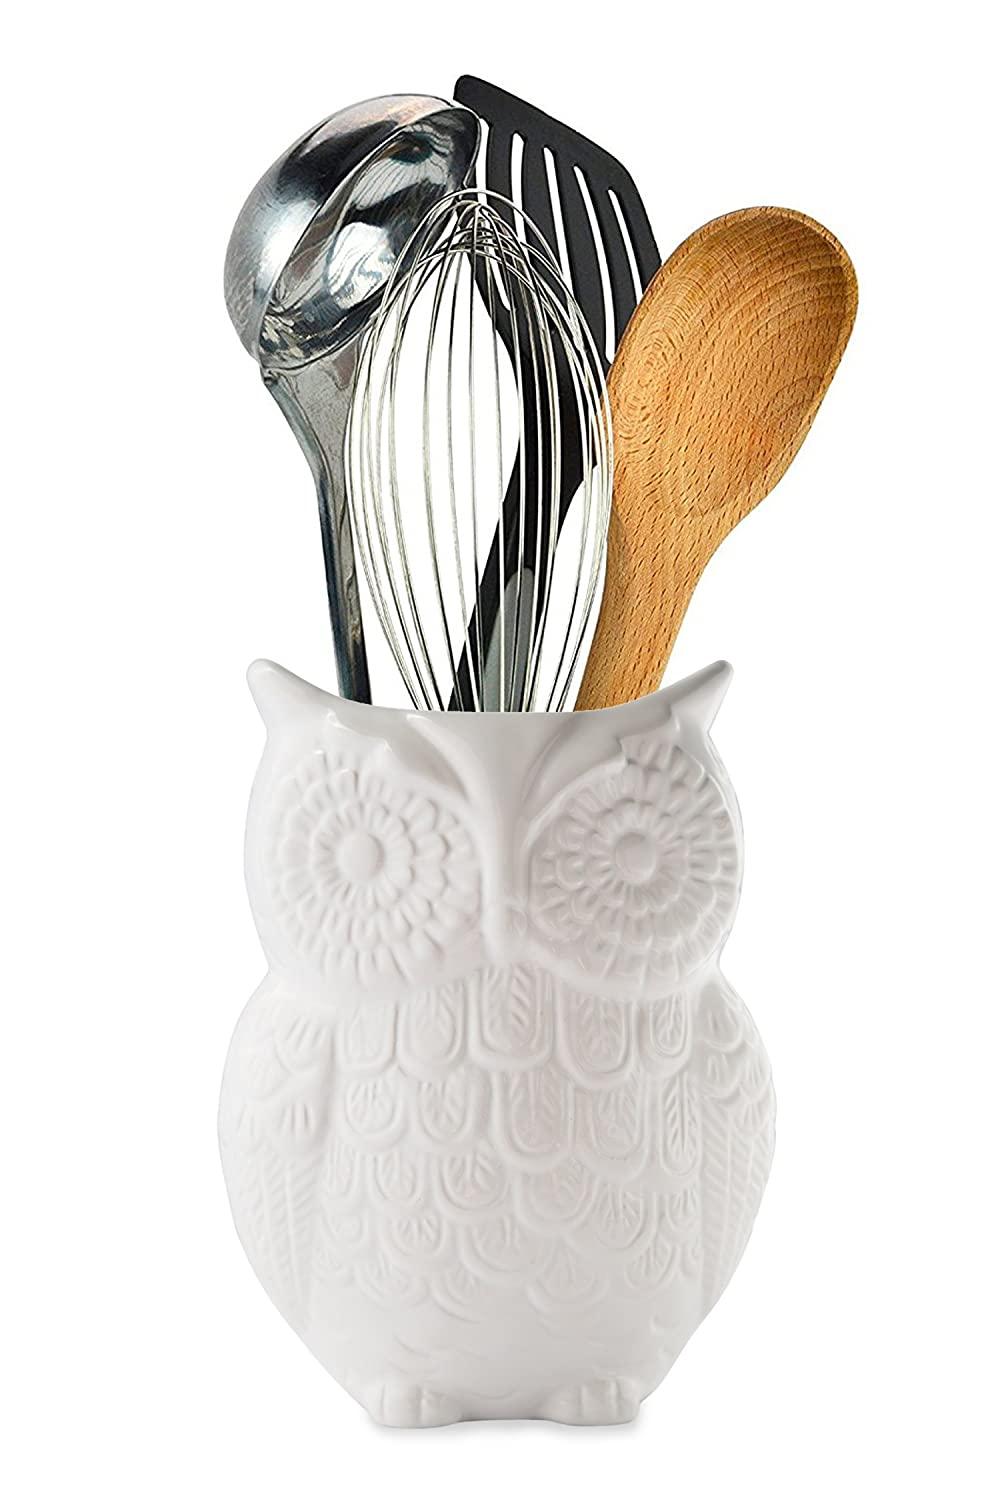 Owl Utensil Holder by Comfify - Decorative Ceramic Cookware Crock & Organizer, in Lovely White Color - Utensil Caddy and Perfect Kitchen Ceramic Décor Gift - 5 x 7 x 4 Size CER-0501-02